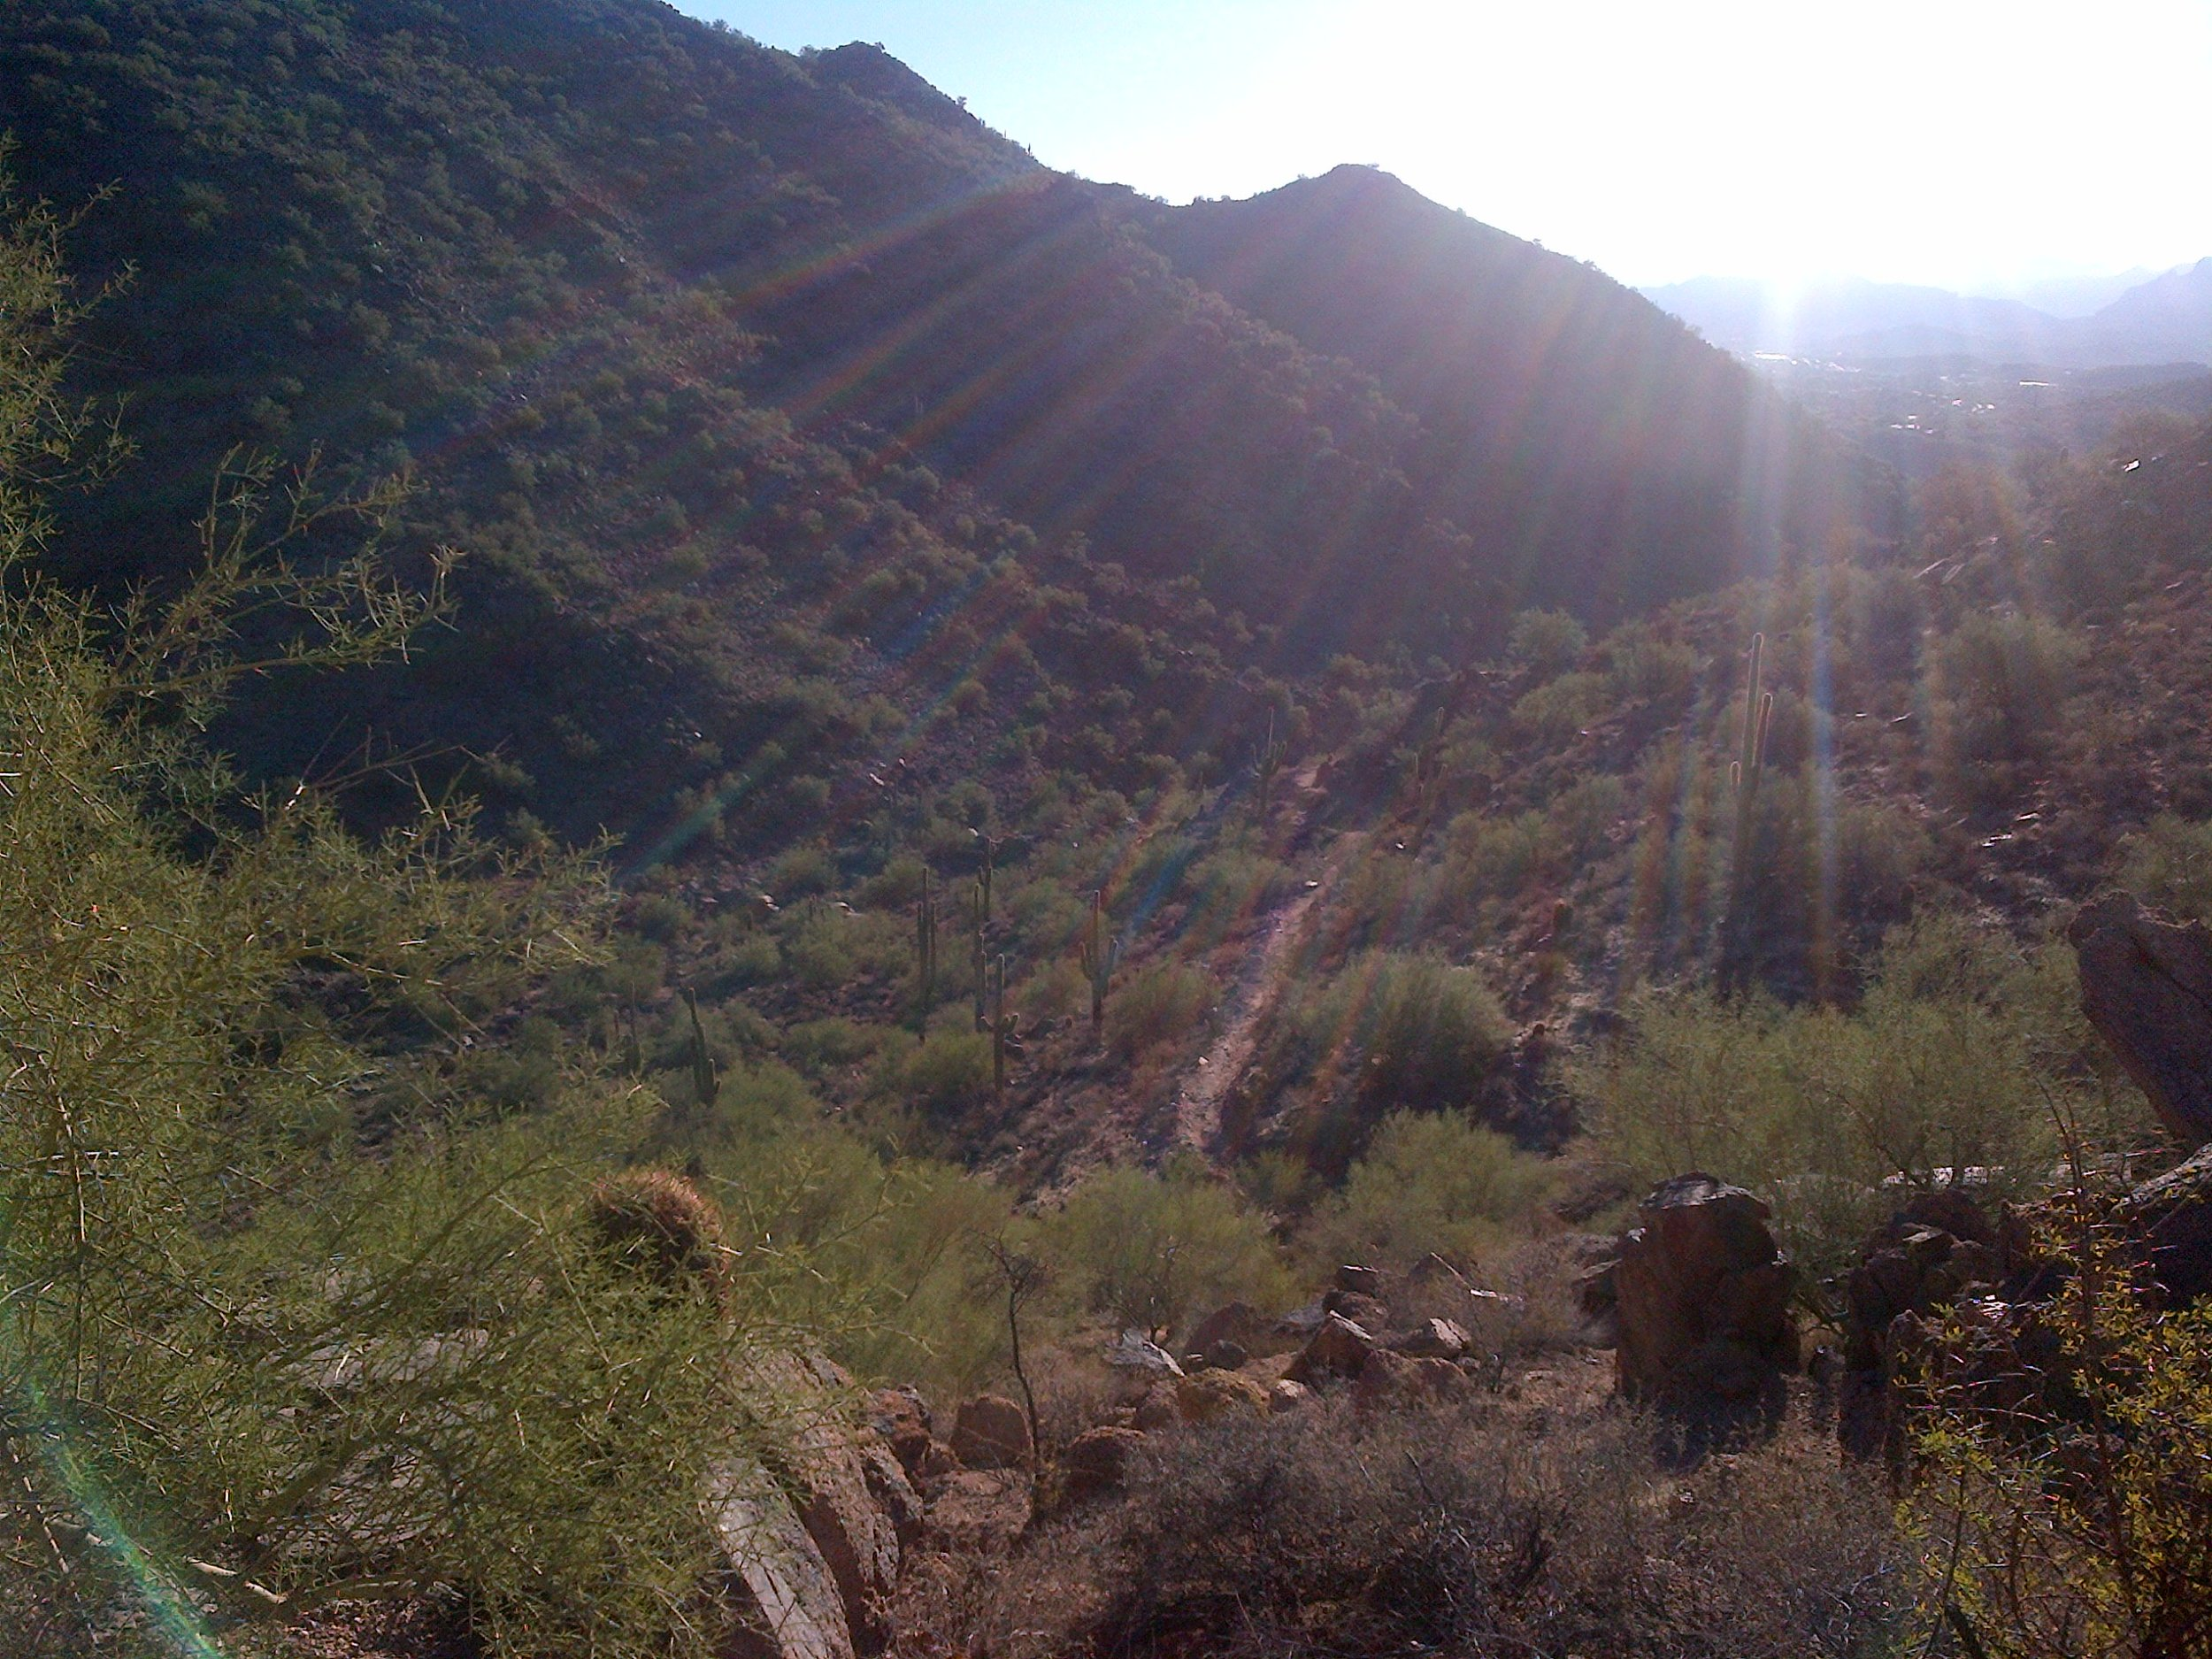 early morning hike before day 2 with the analysts and consultants - before the sun gets too hot!